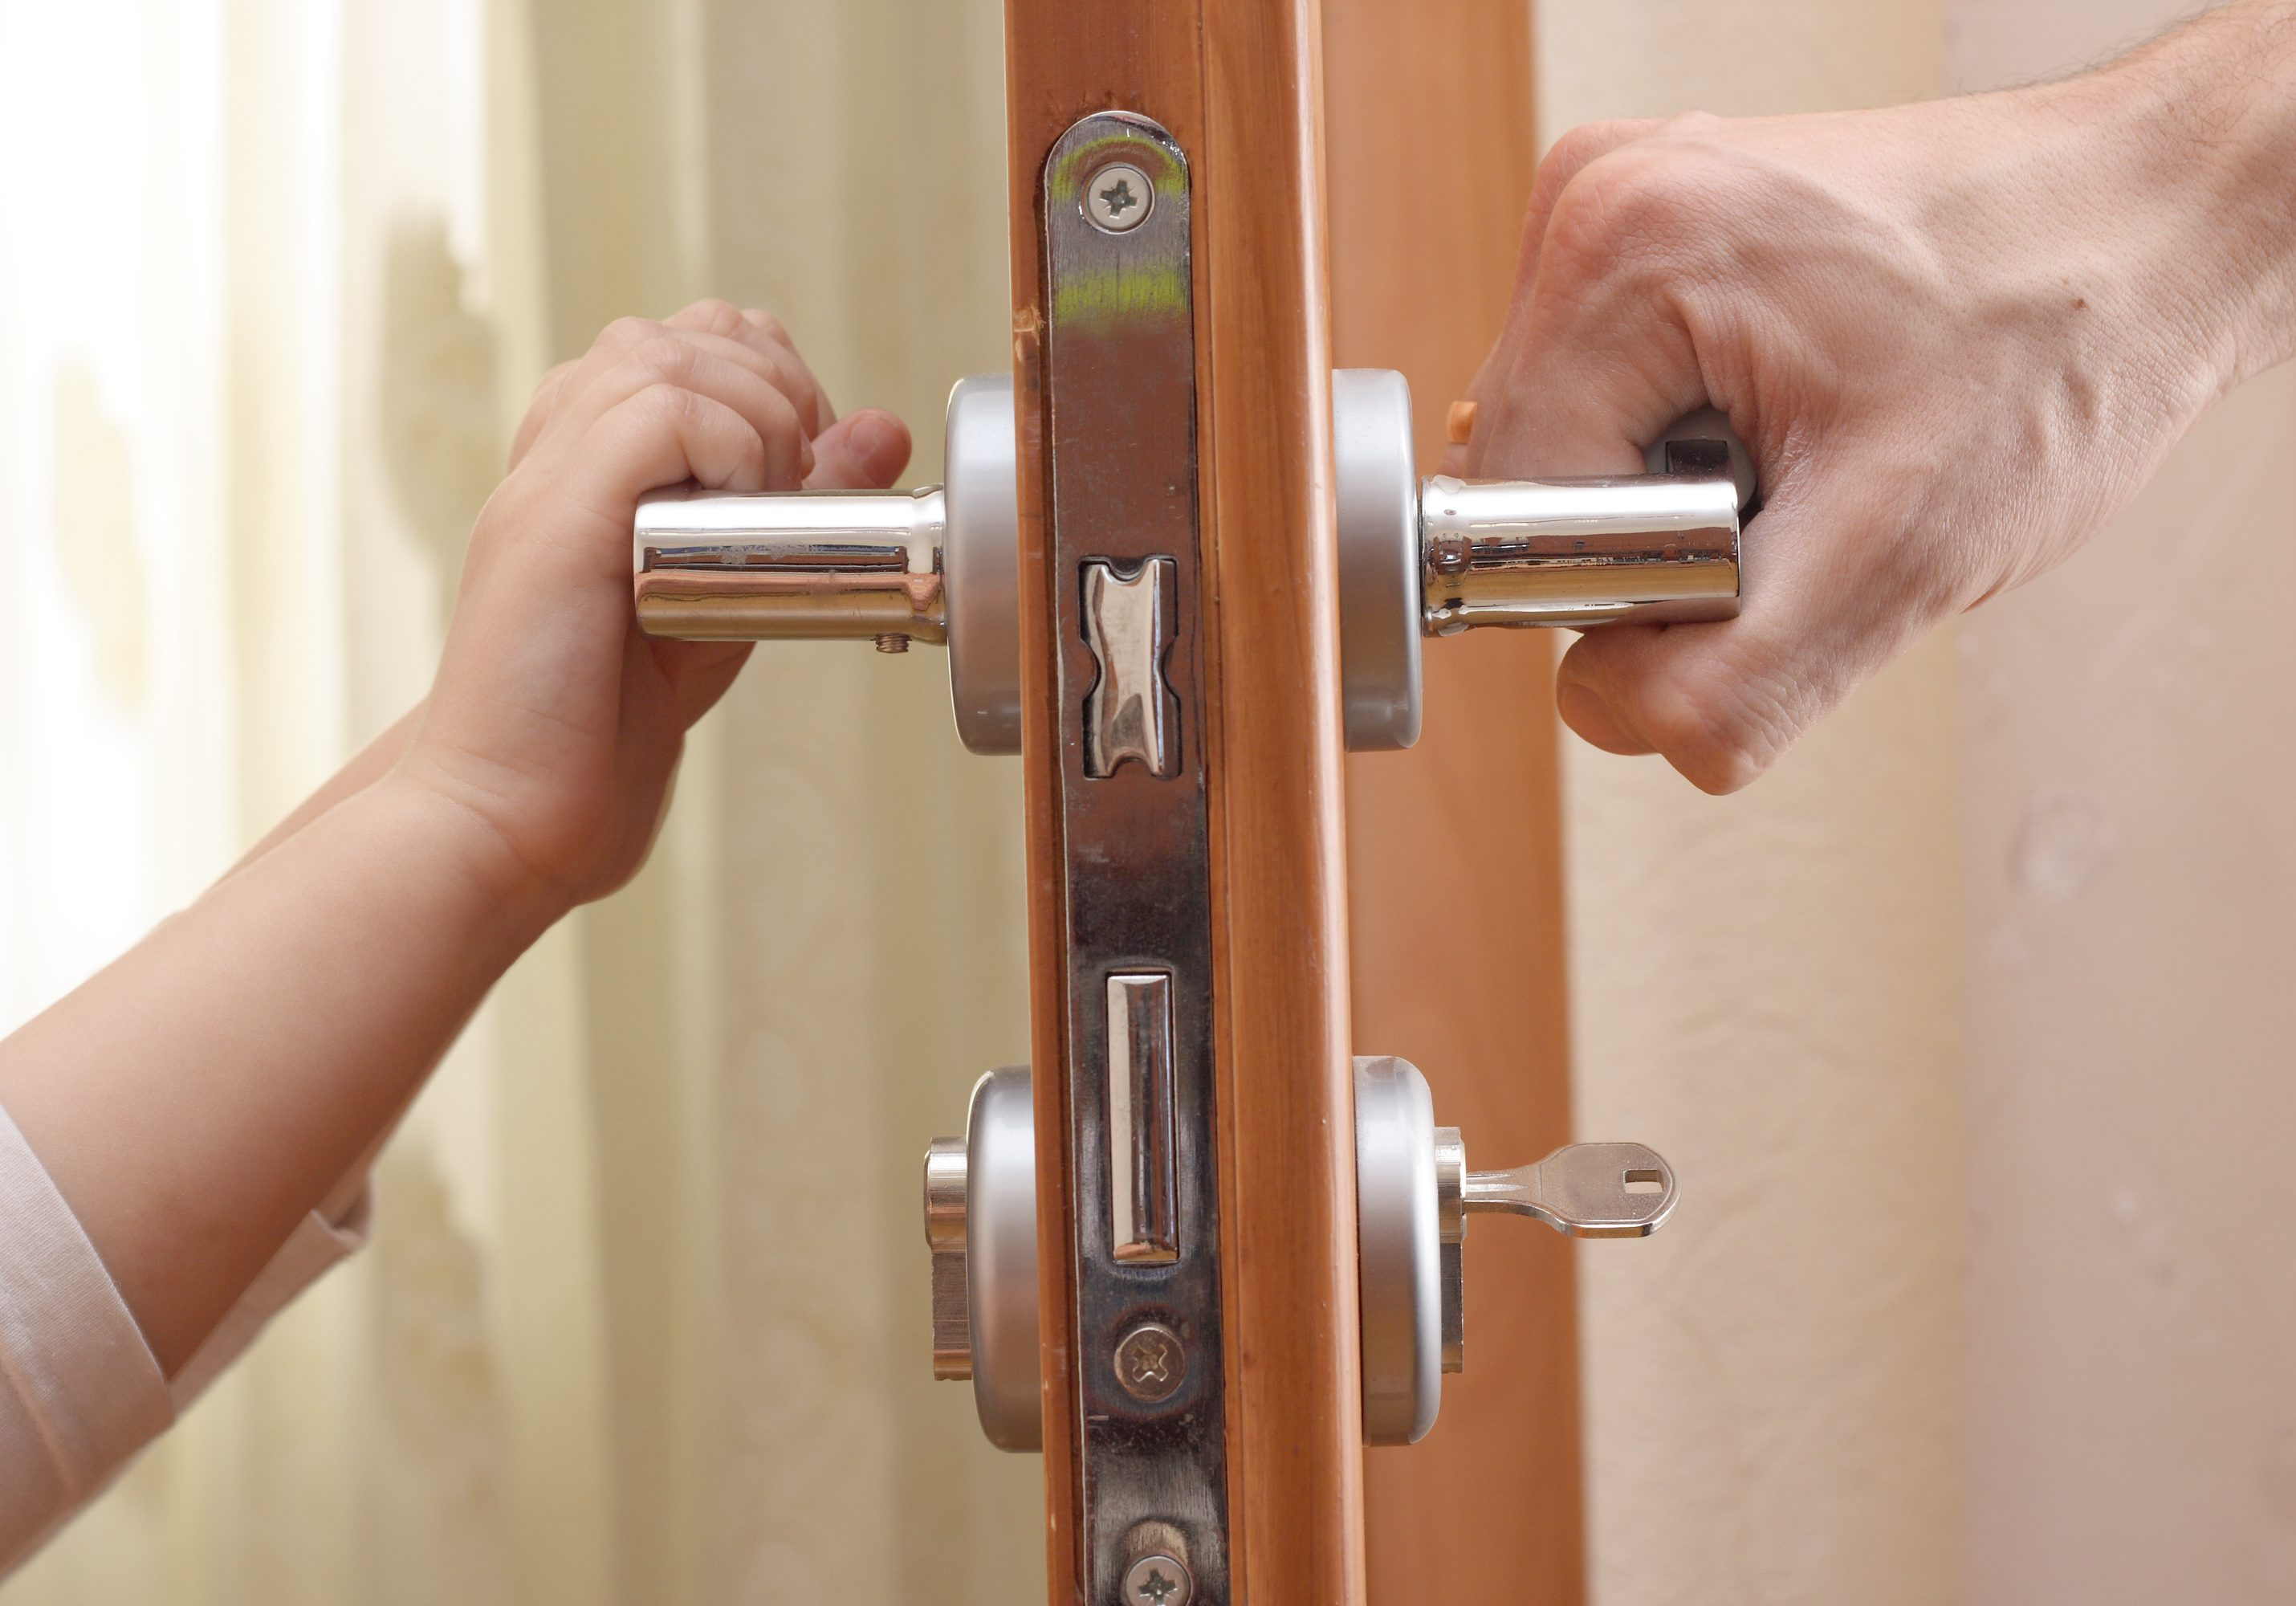 door lock. For the handle to hold an adult and a child